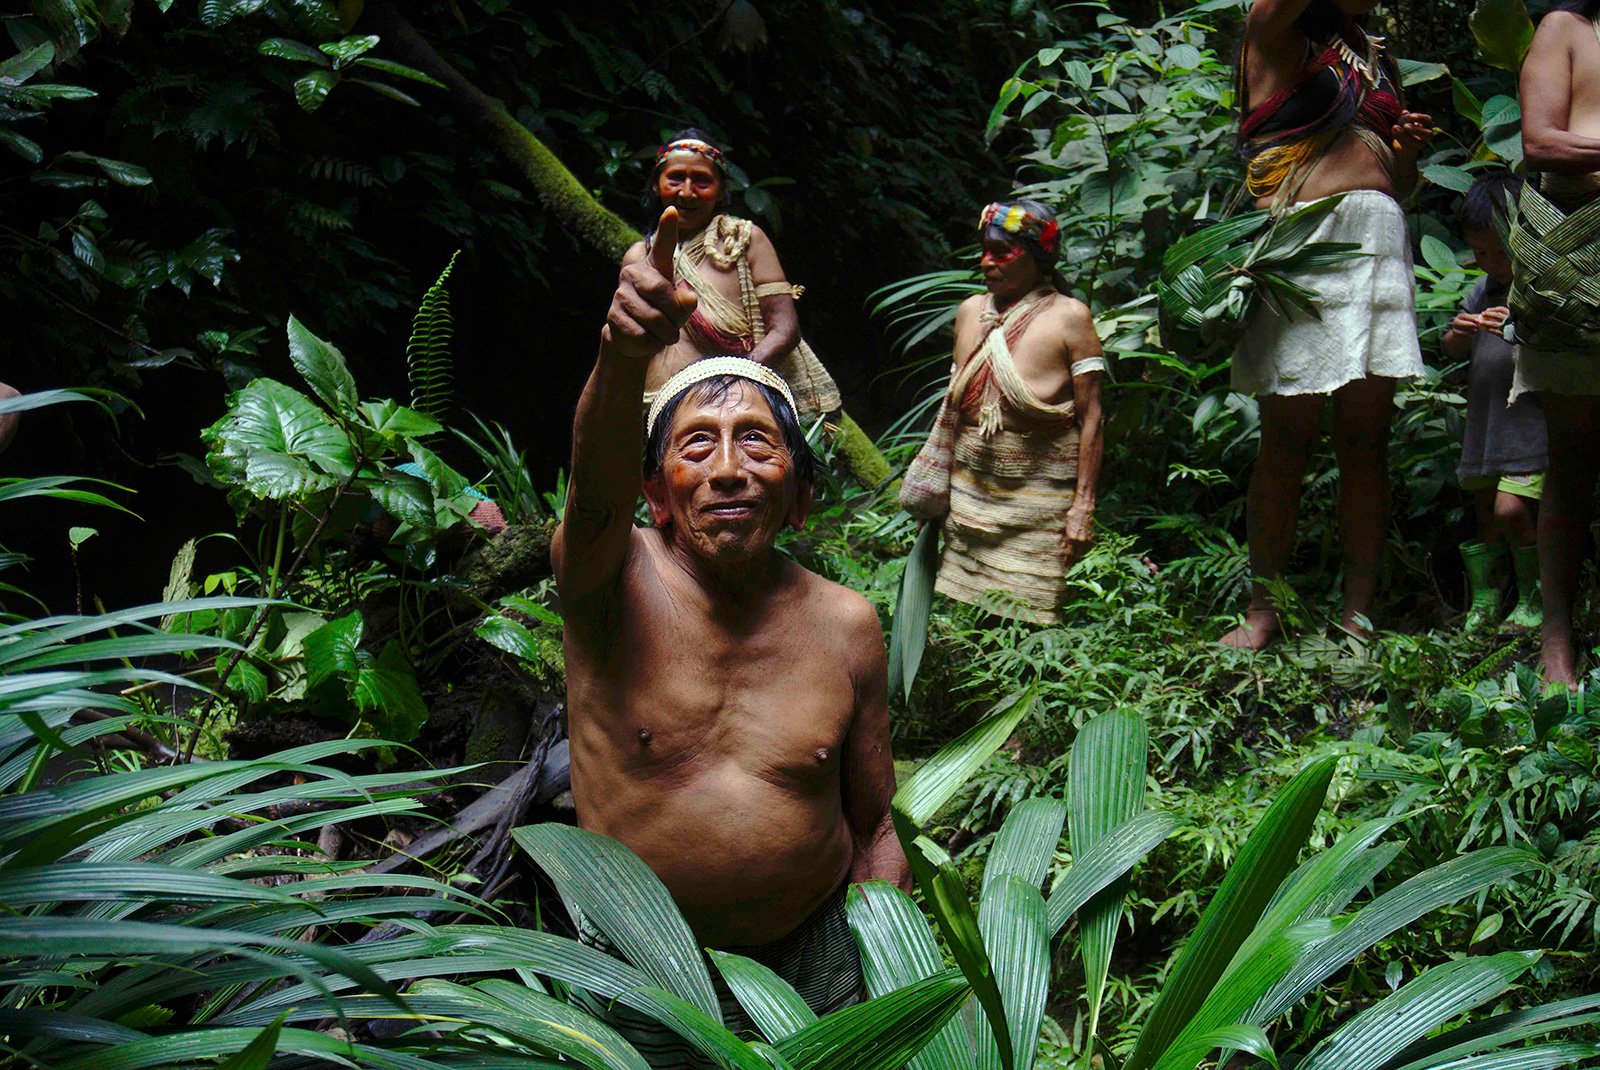 A Waorani elder looks above at the forest canopy near a sacred waterfall at the community of Nemonpare, Waorani territory, Ecuadorian Amazon.